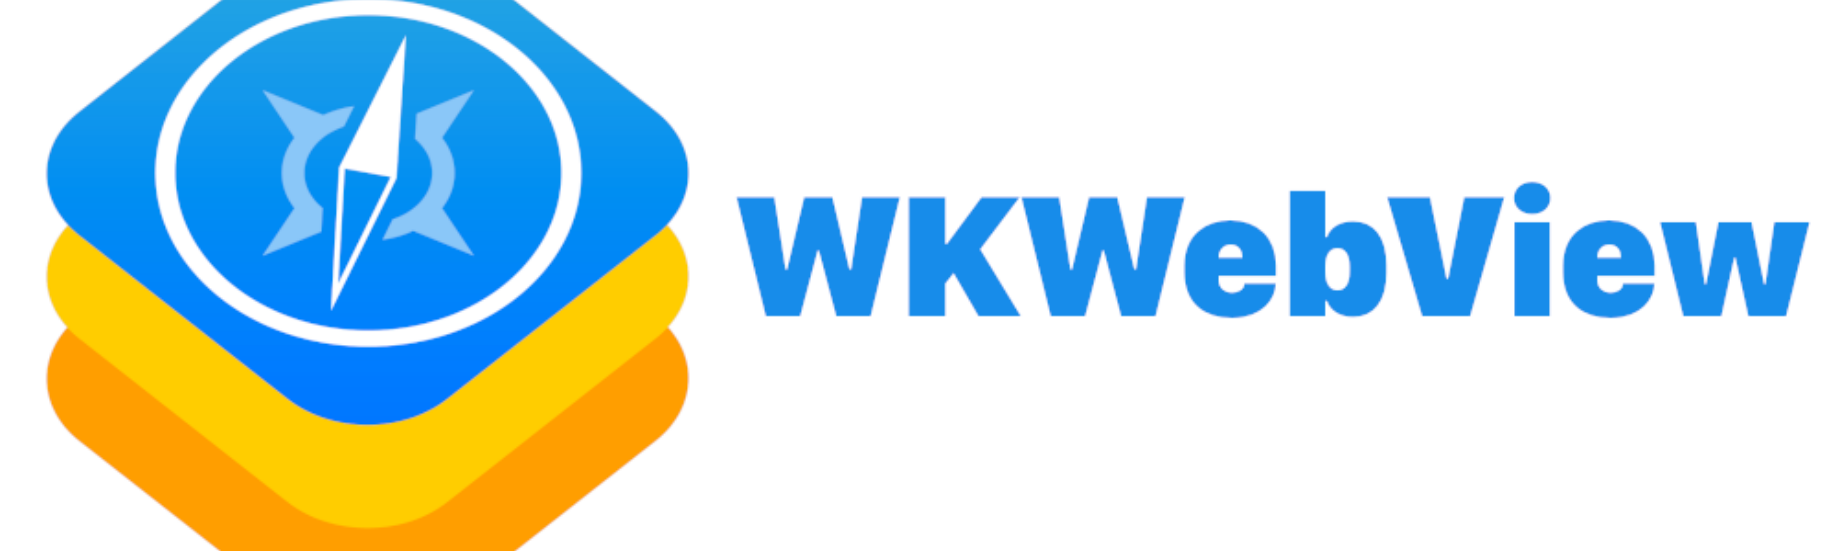 Determining the content size of a WKWebView - Amer Hukić